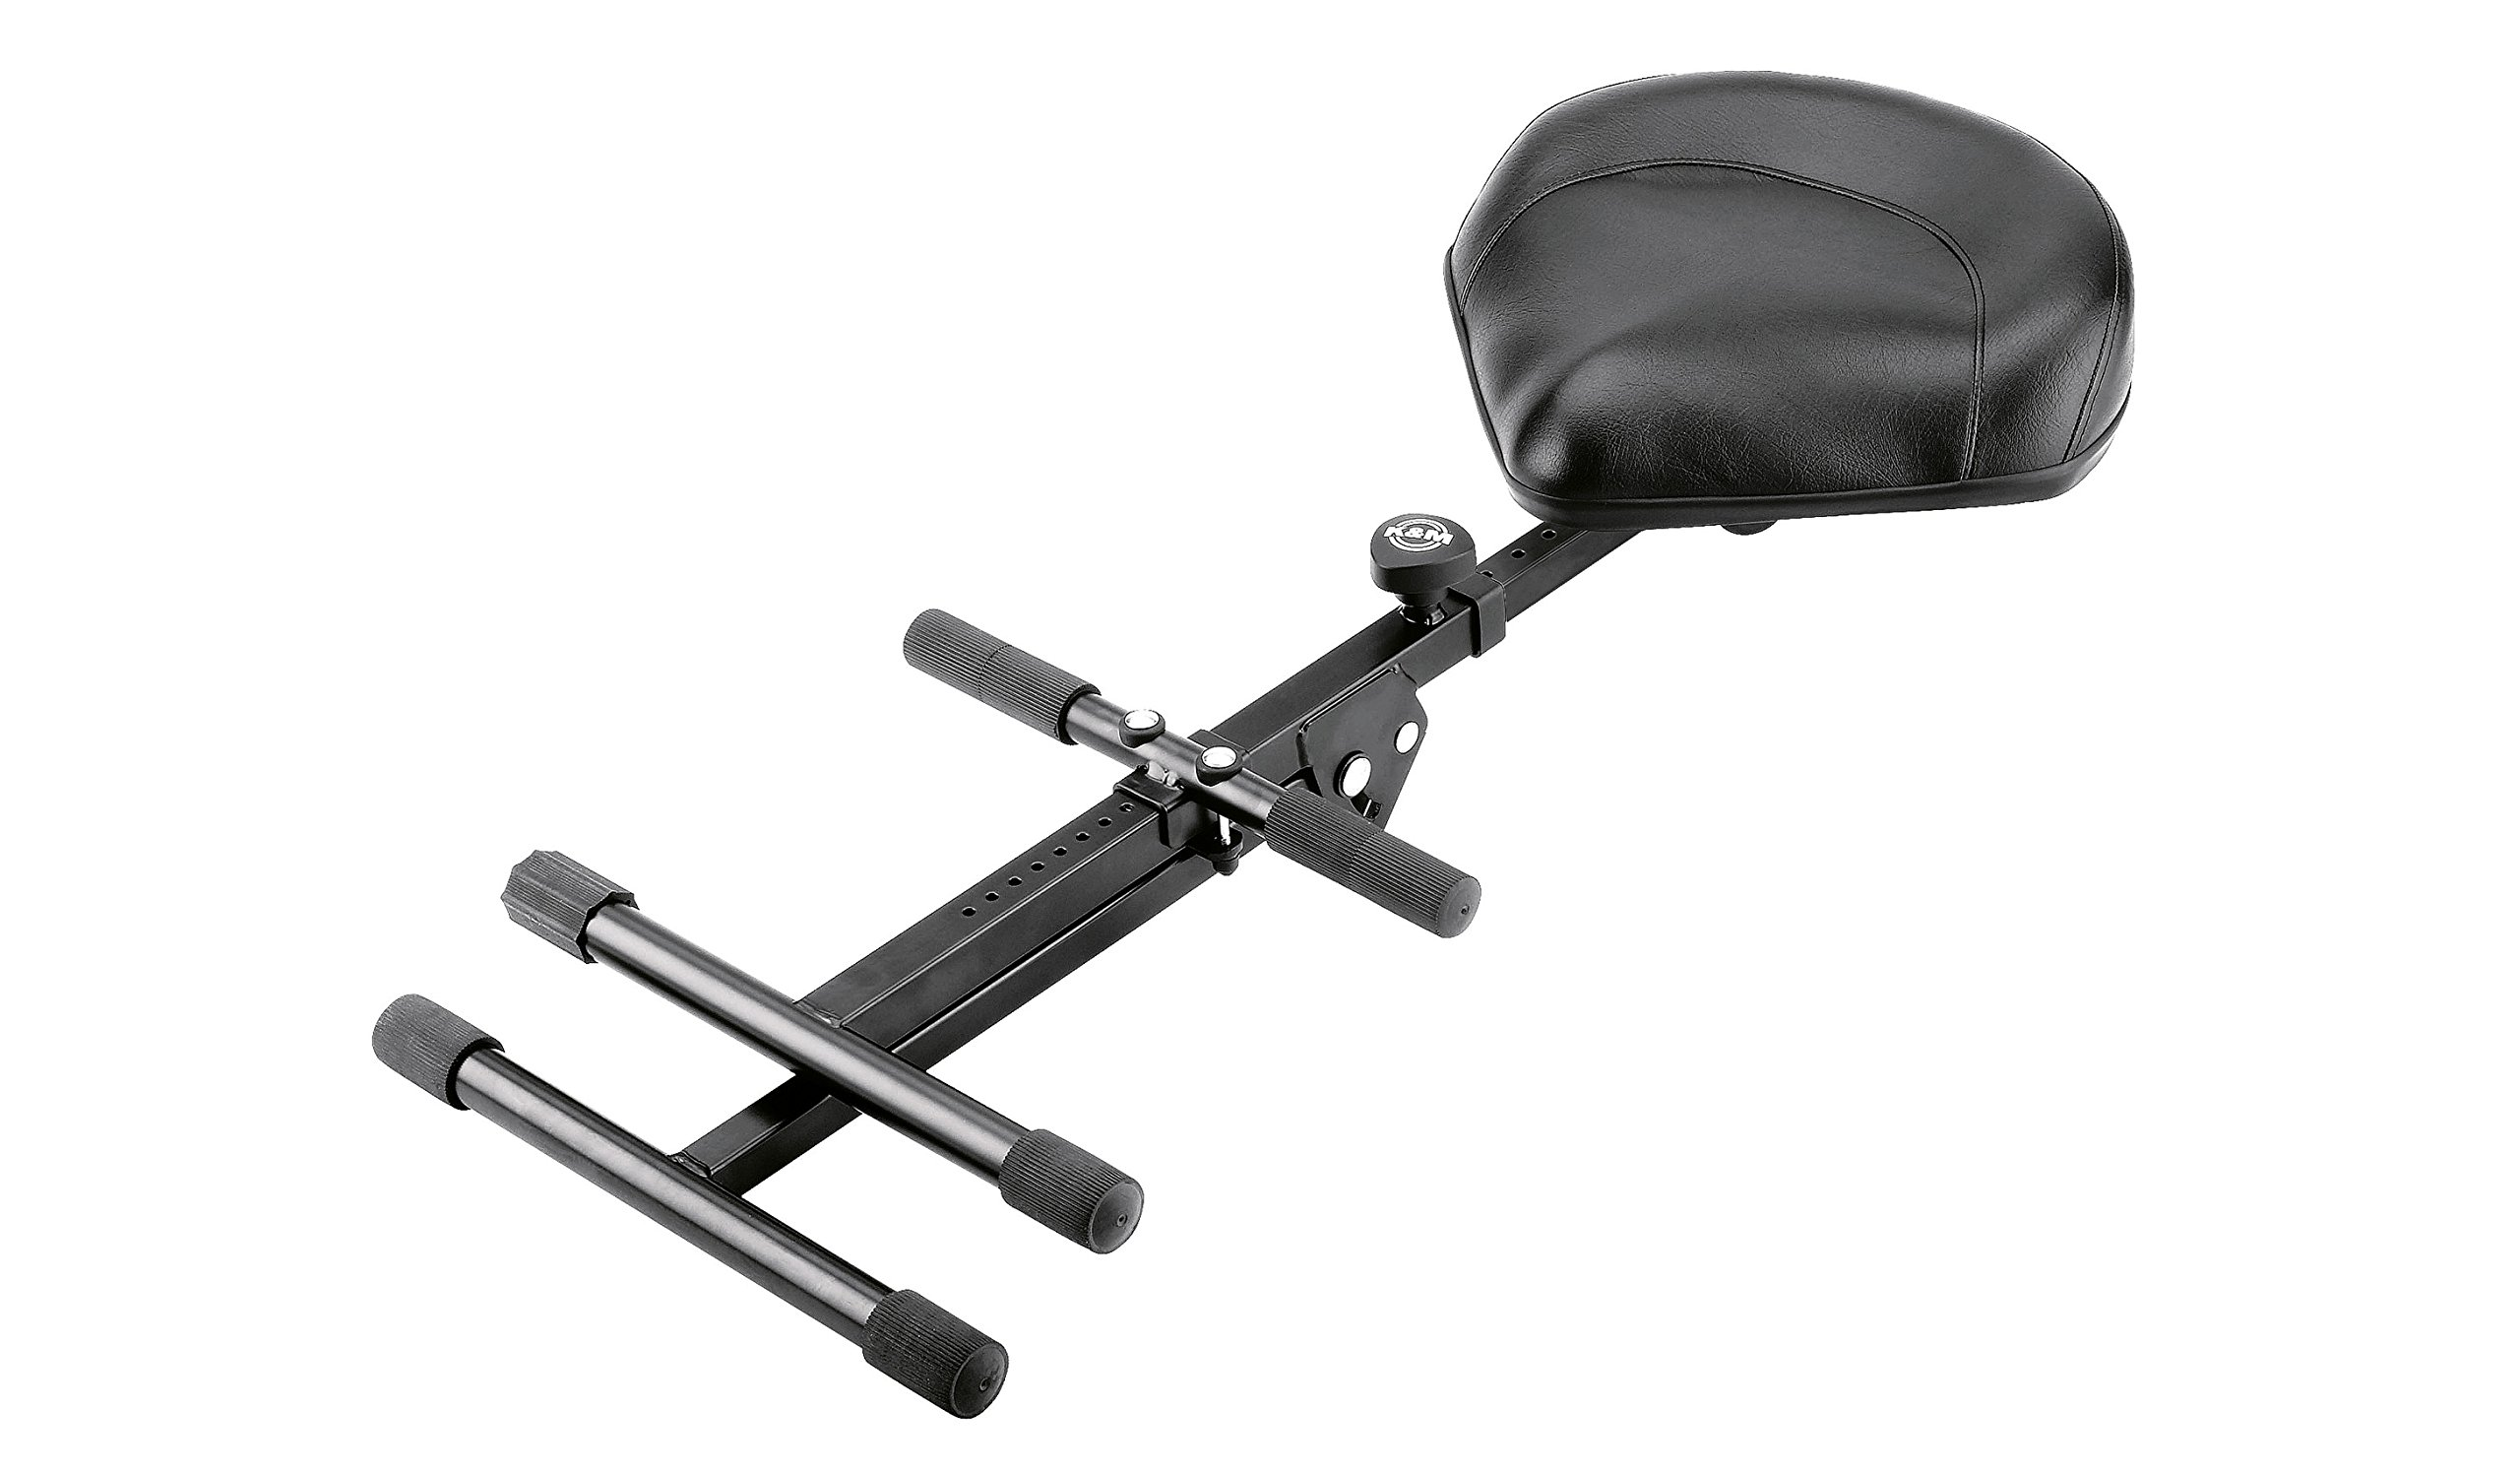 K&M Stands K&M Performance Stool - black imitation leather 14045.000.55 by K&M Stands (Image #2)